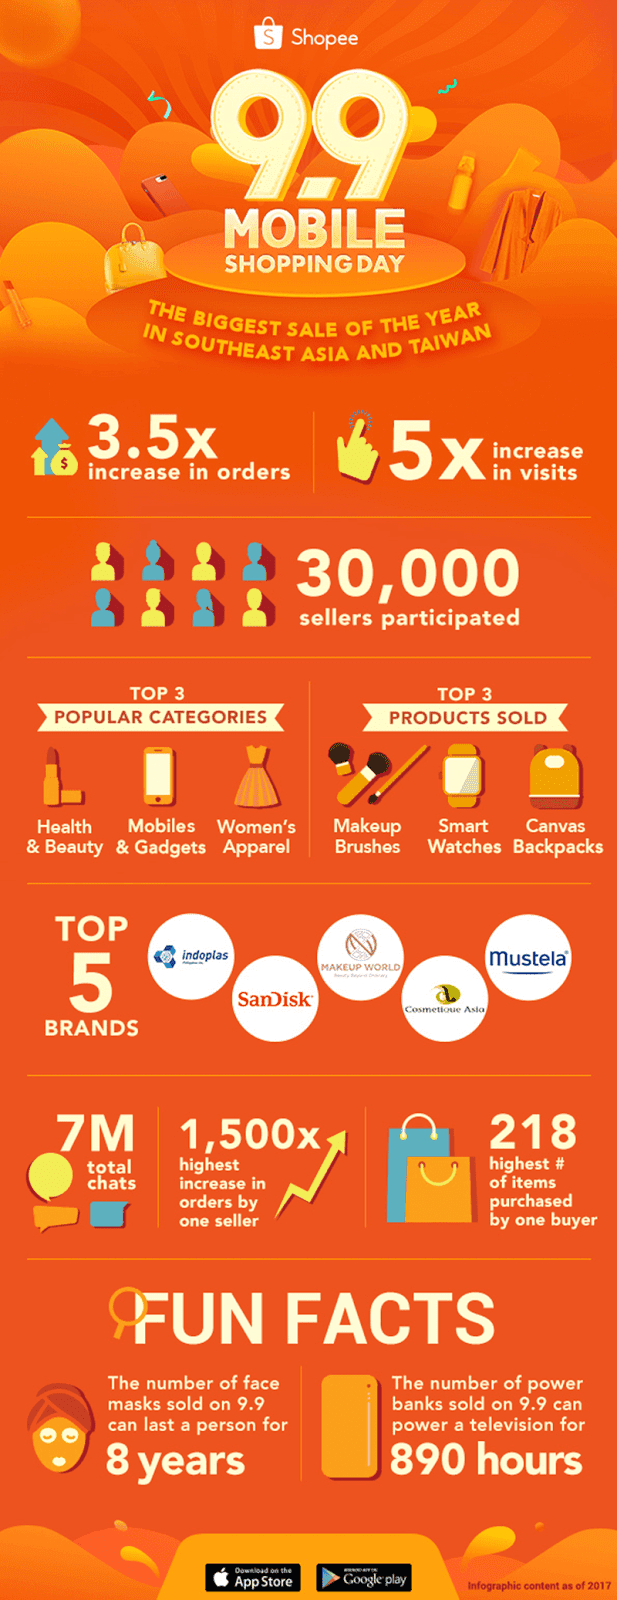 Shopee 9.9 Sale Broke Records With 3x More Orders In 24 Hours